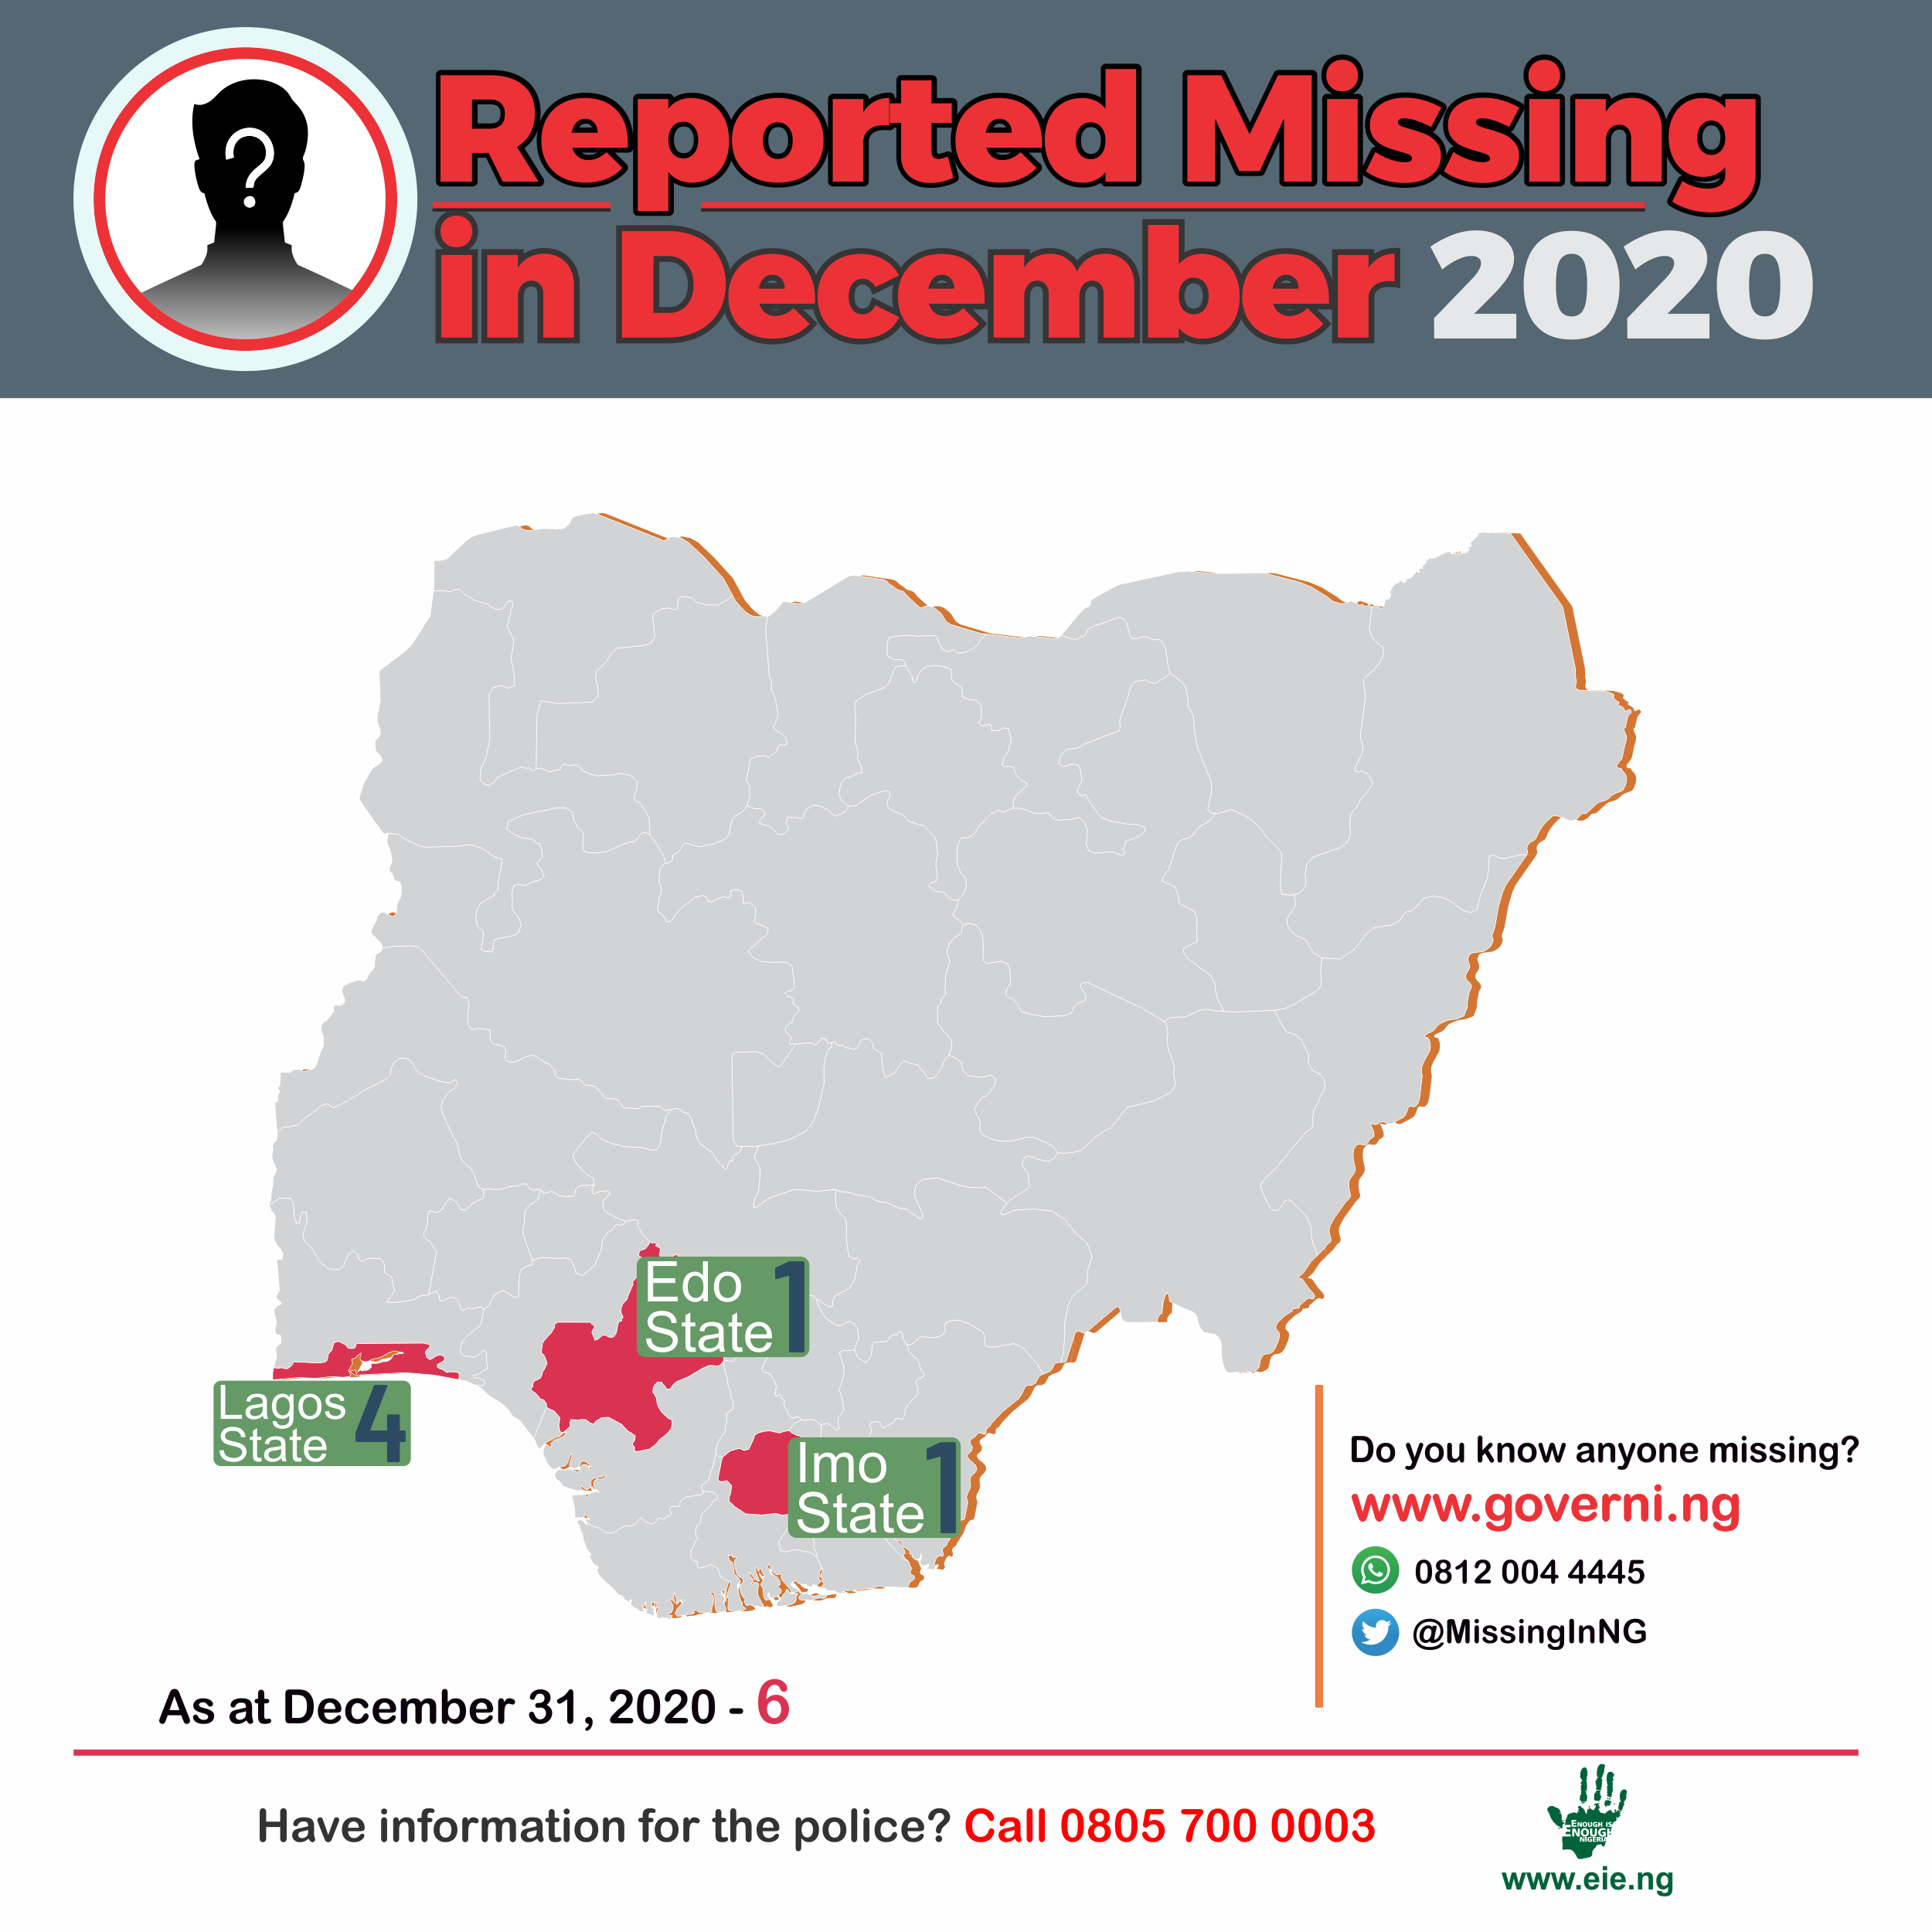 Reported Missing in December 2020